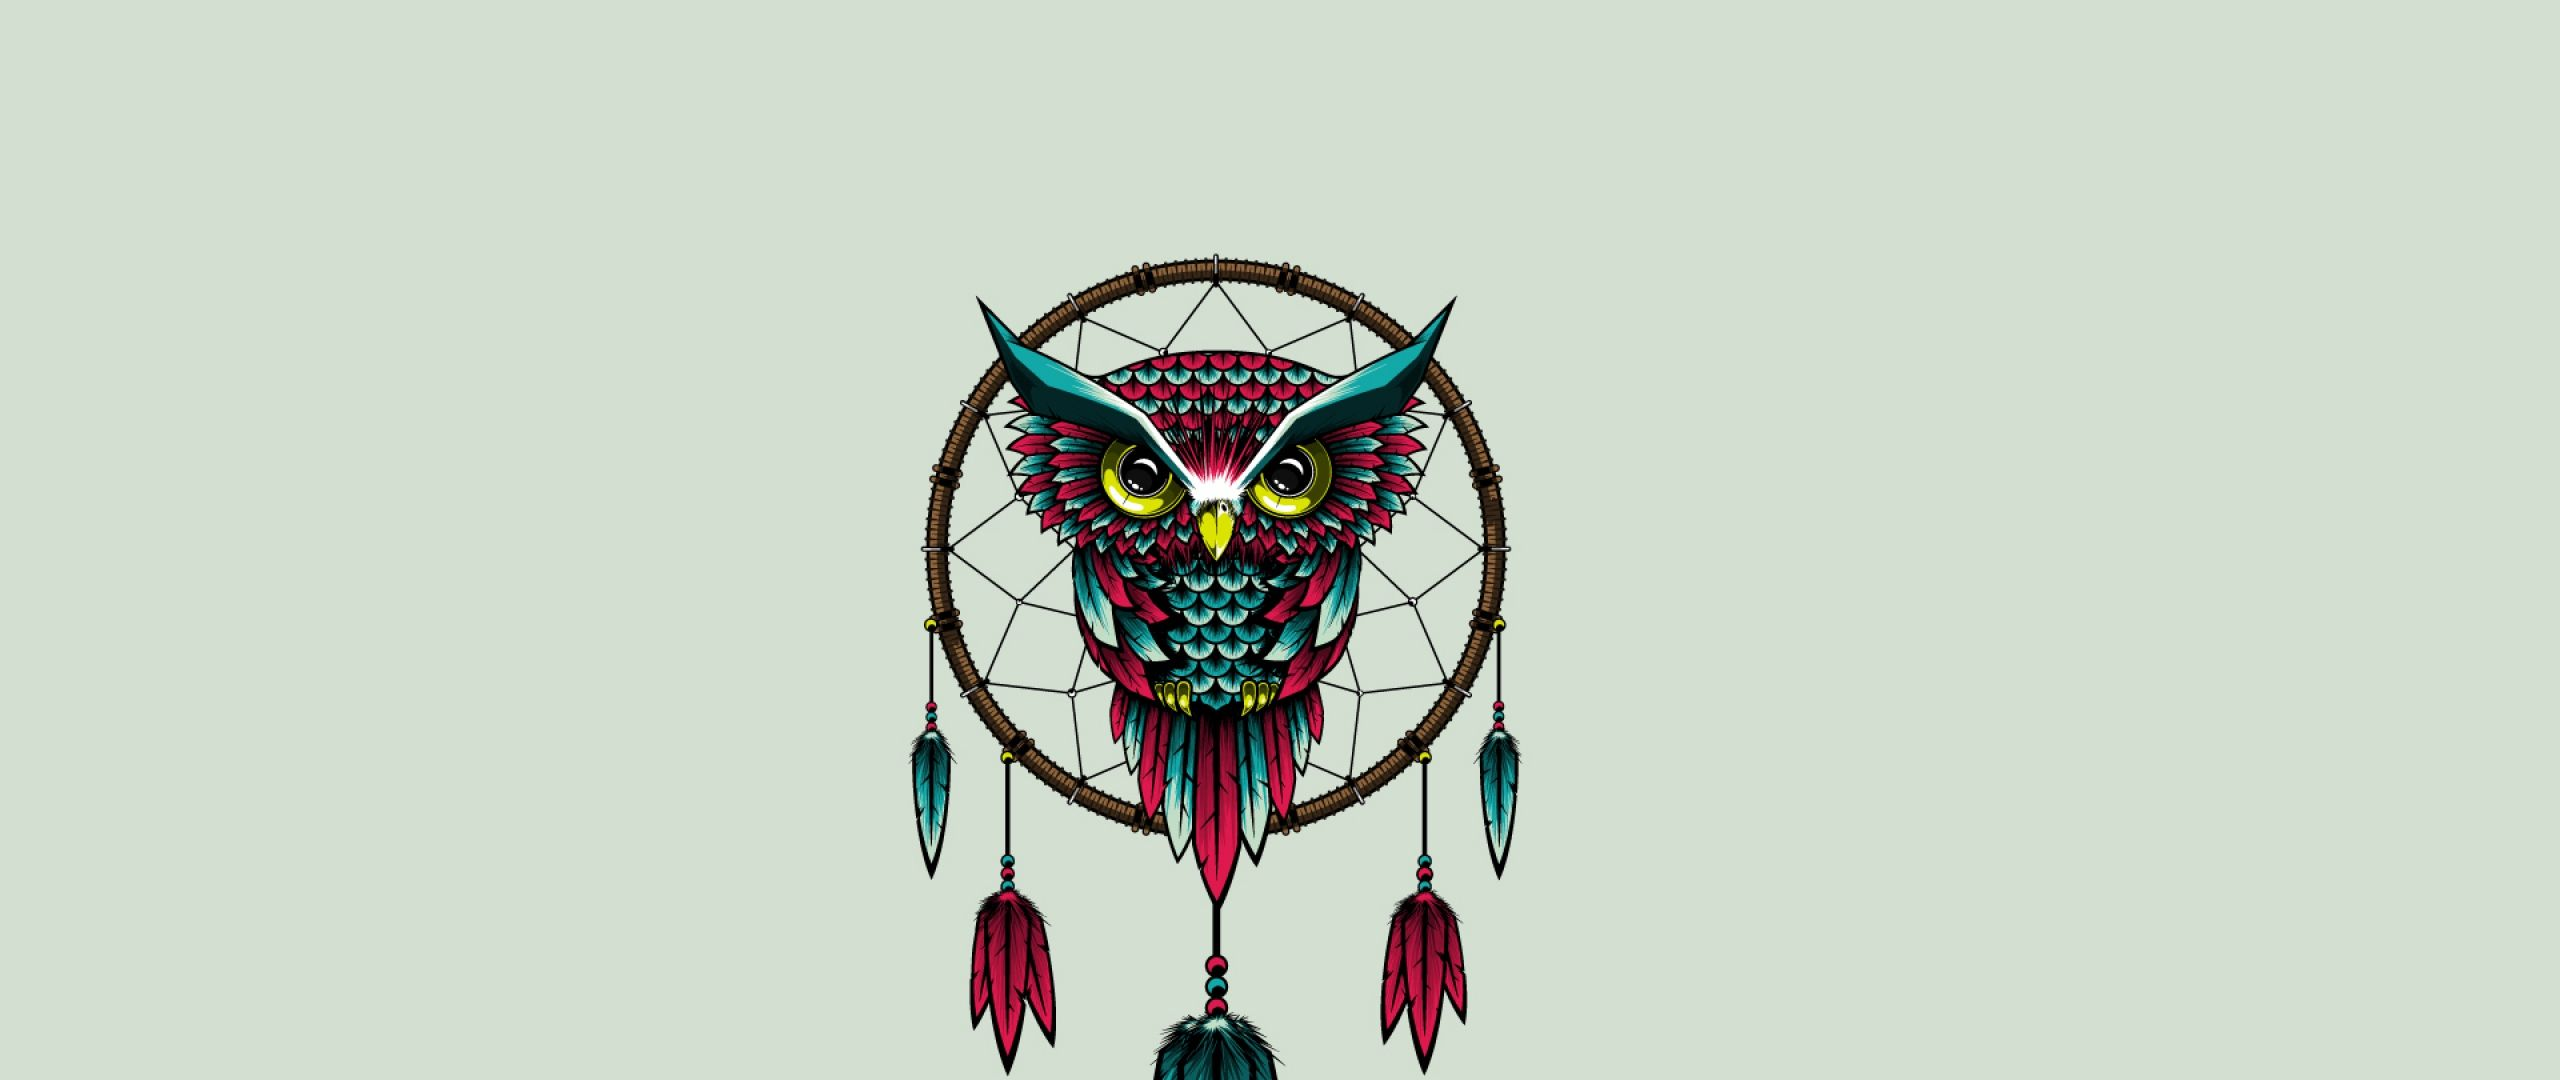 Pin by christye li on illustrations divers pinterest illustrations owl dreamcatcher designer mobile phone case cover for oneplus one designer phone cases and covers for oneplus one back covers and cases with trendy voltagebd Gallery